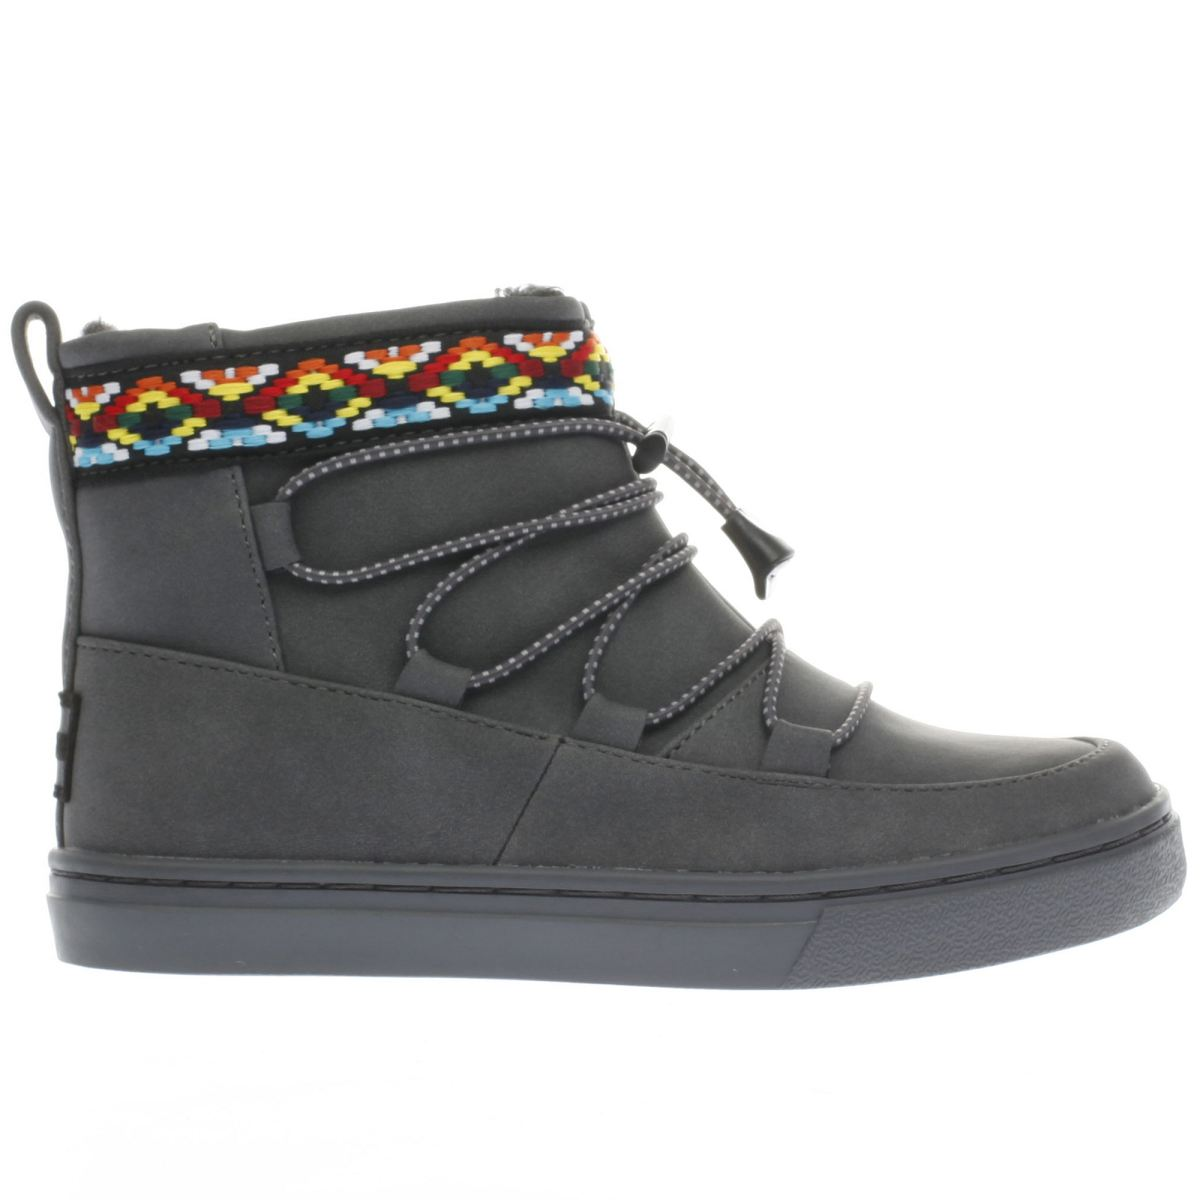 toms dark grey alpine boot Girls Junior Boots